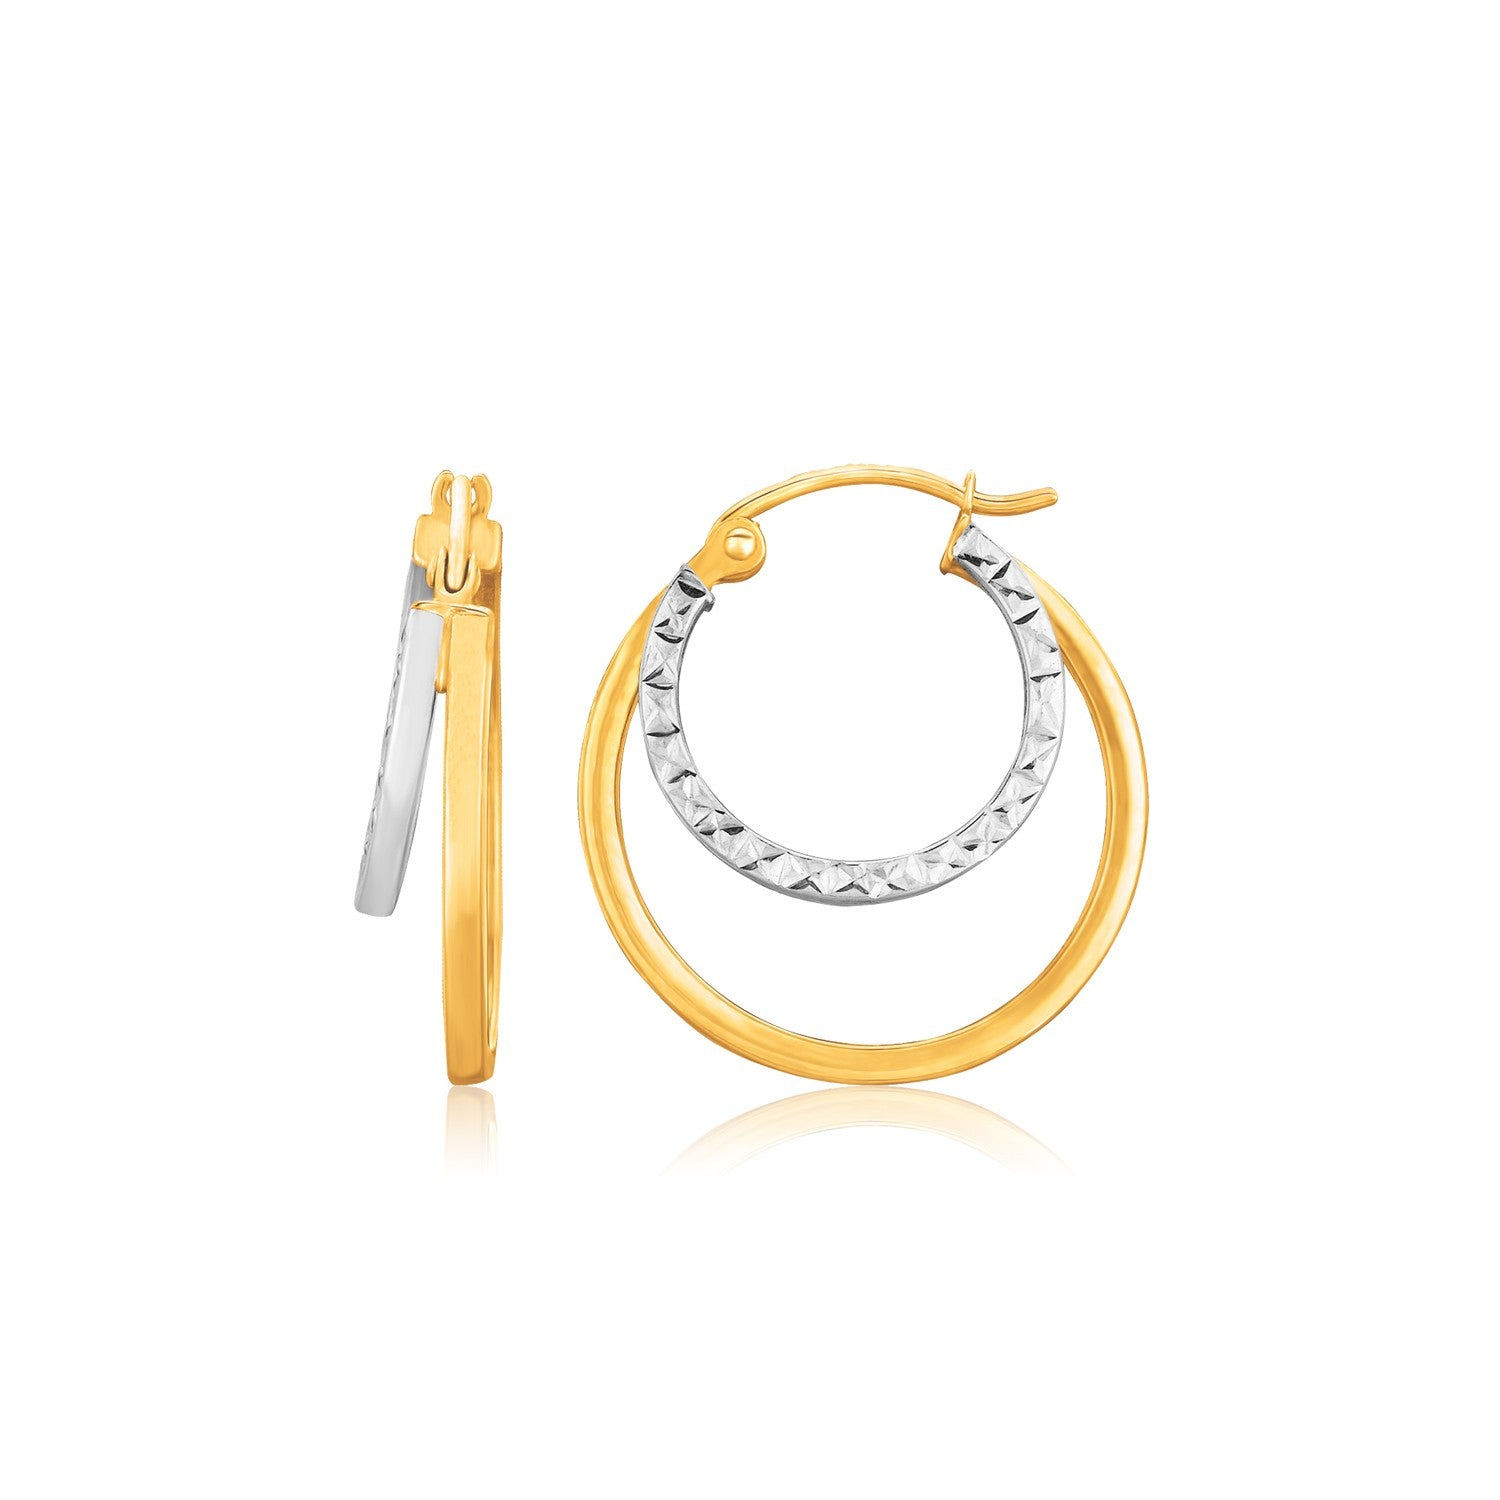 Original Modern Italian Style 14K Two Tone Gold Double Hoop Hammered Texture Earrings